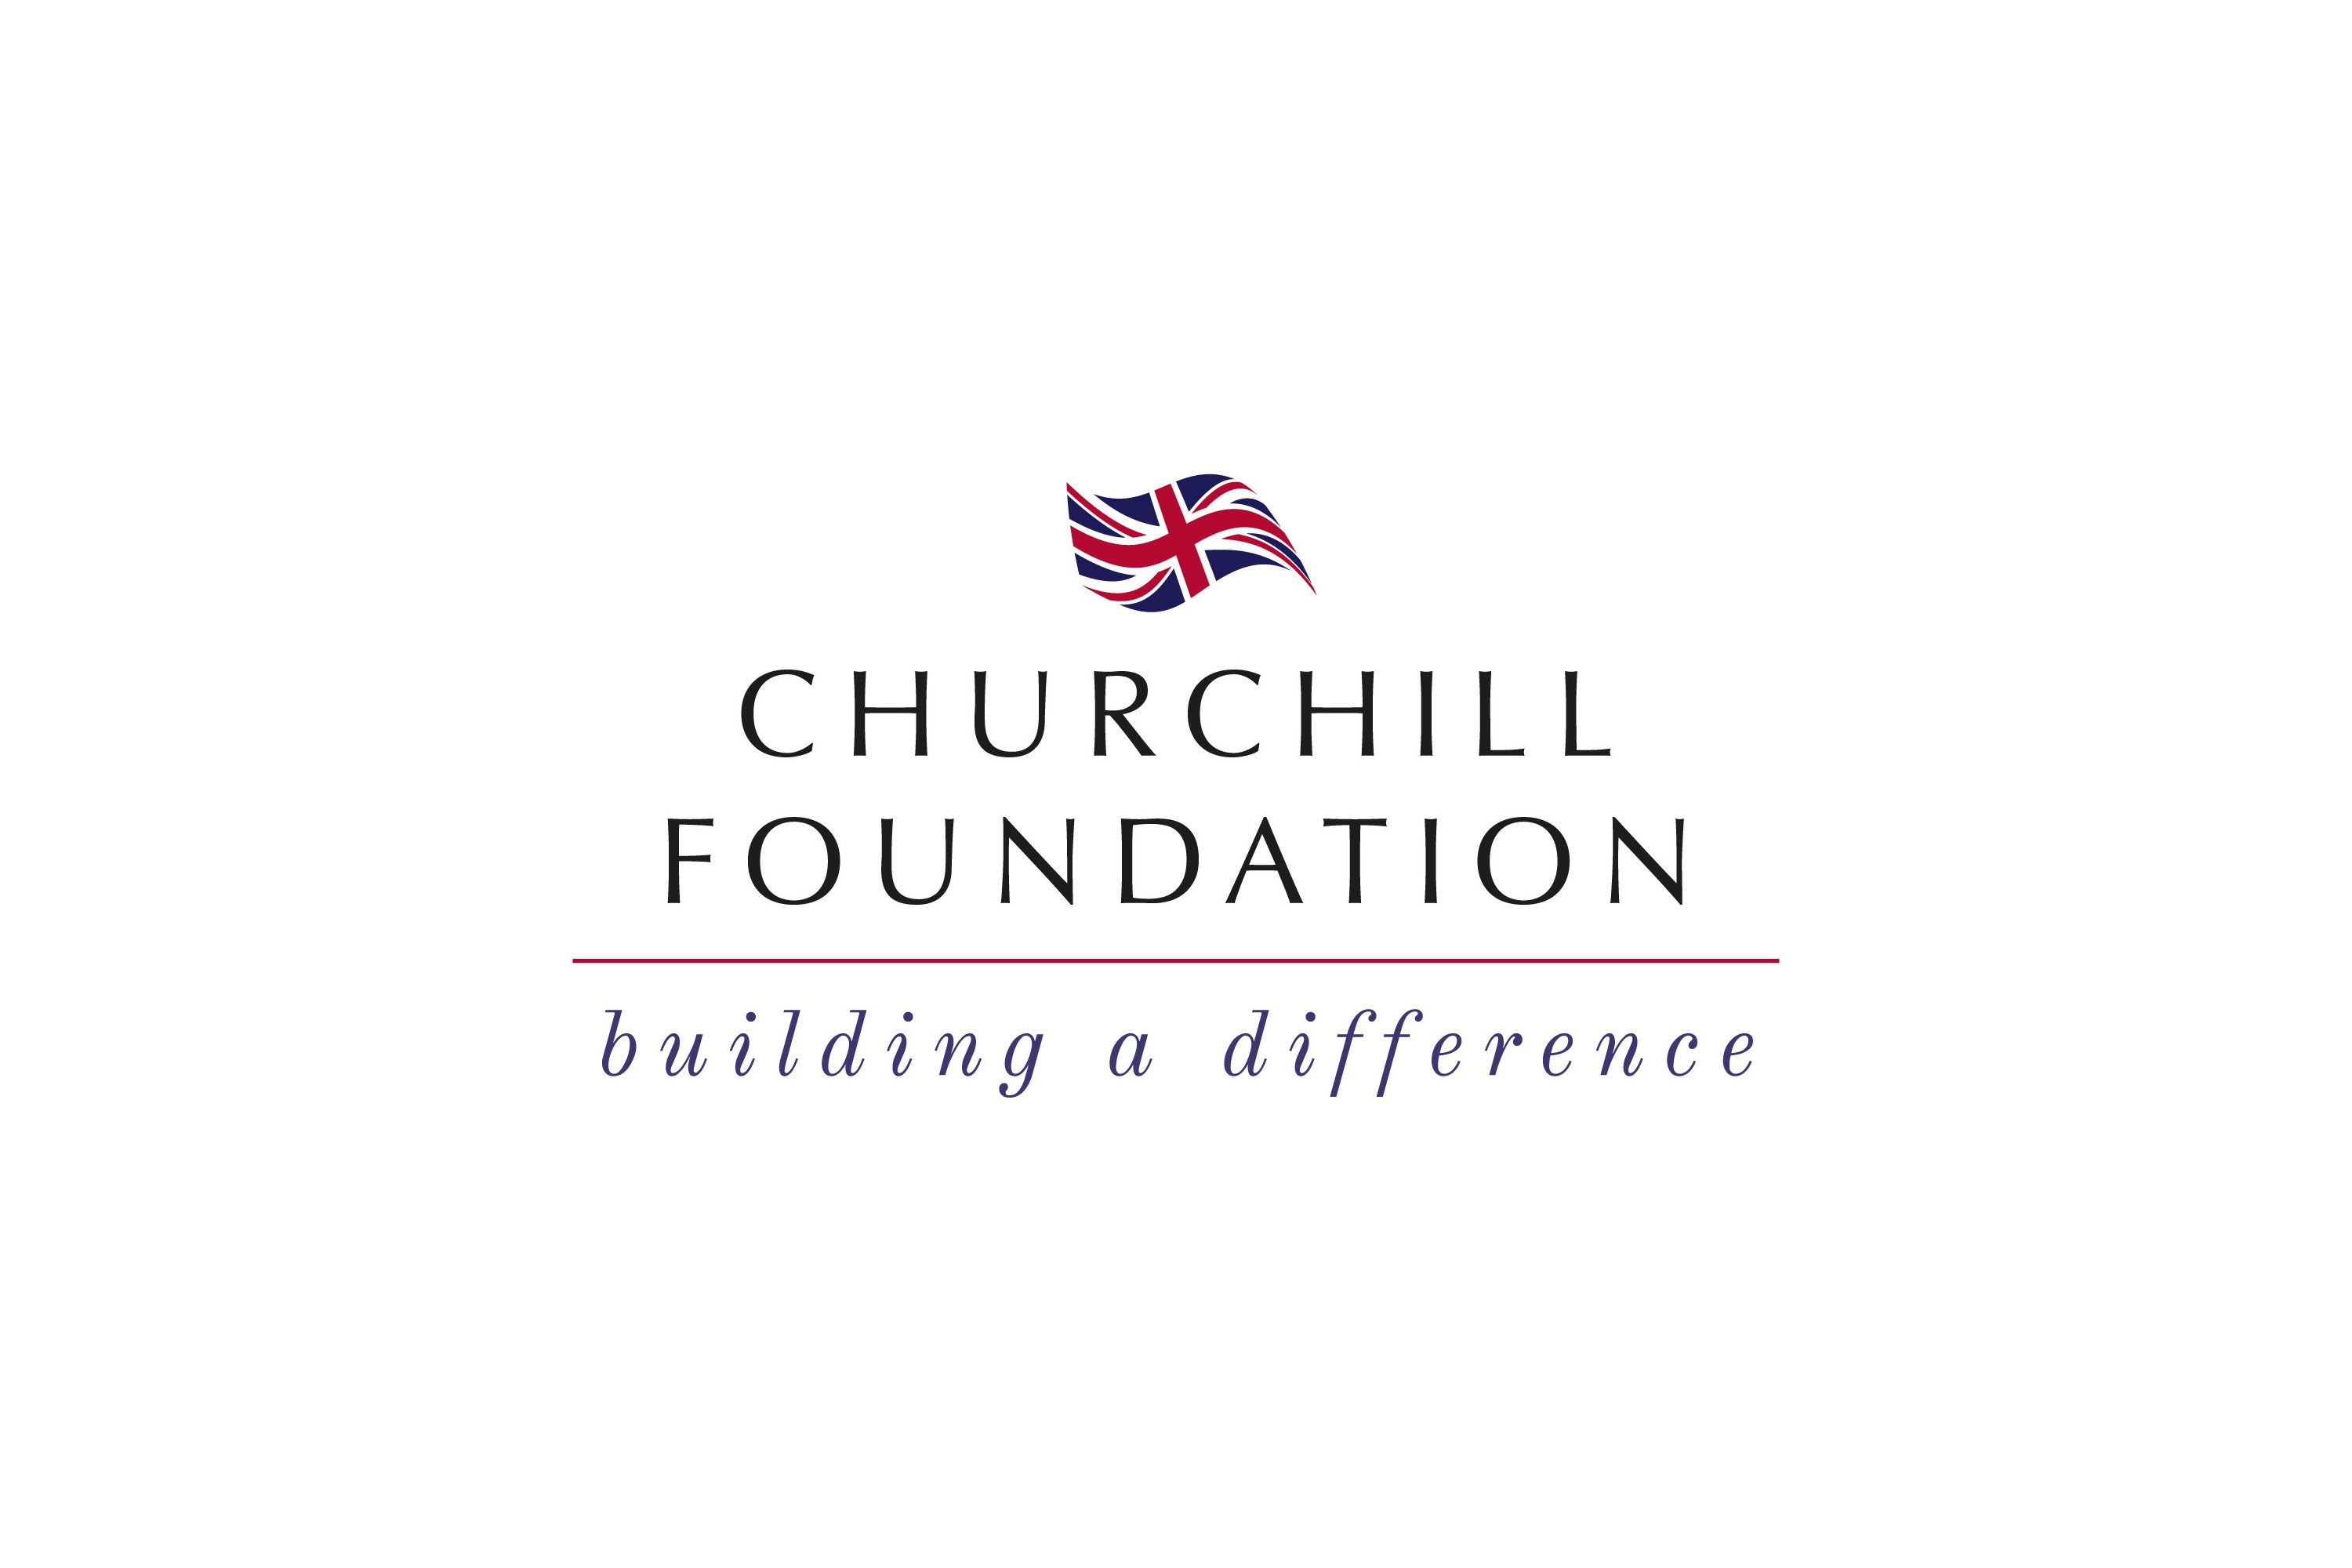 Churchill Foundation